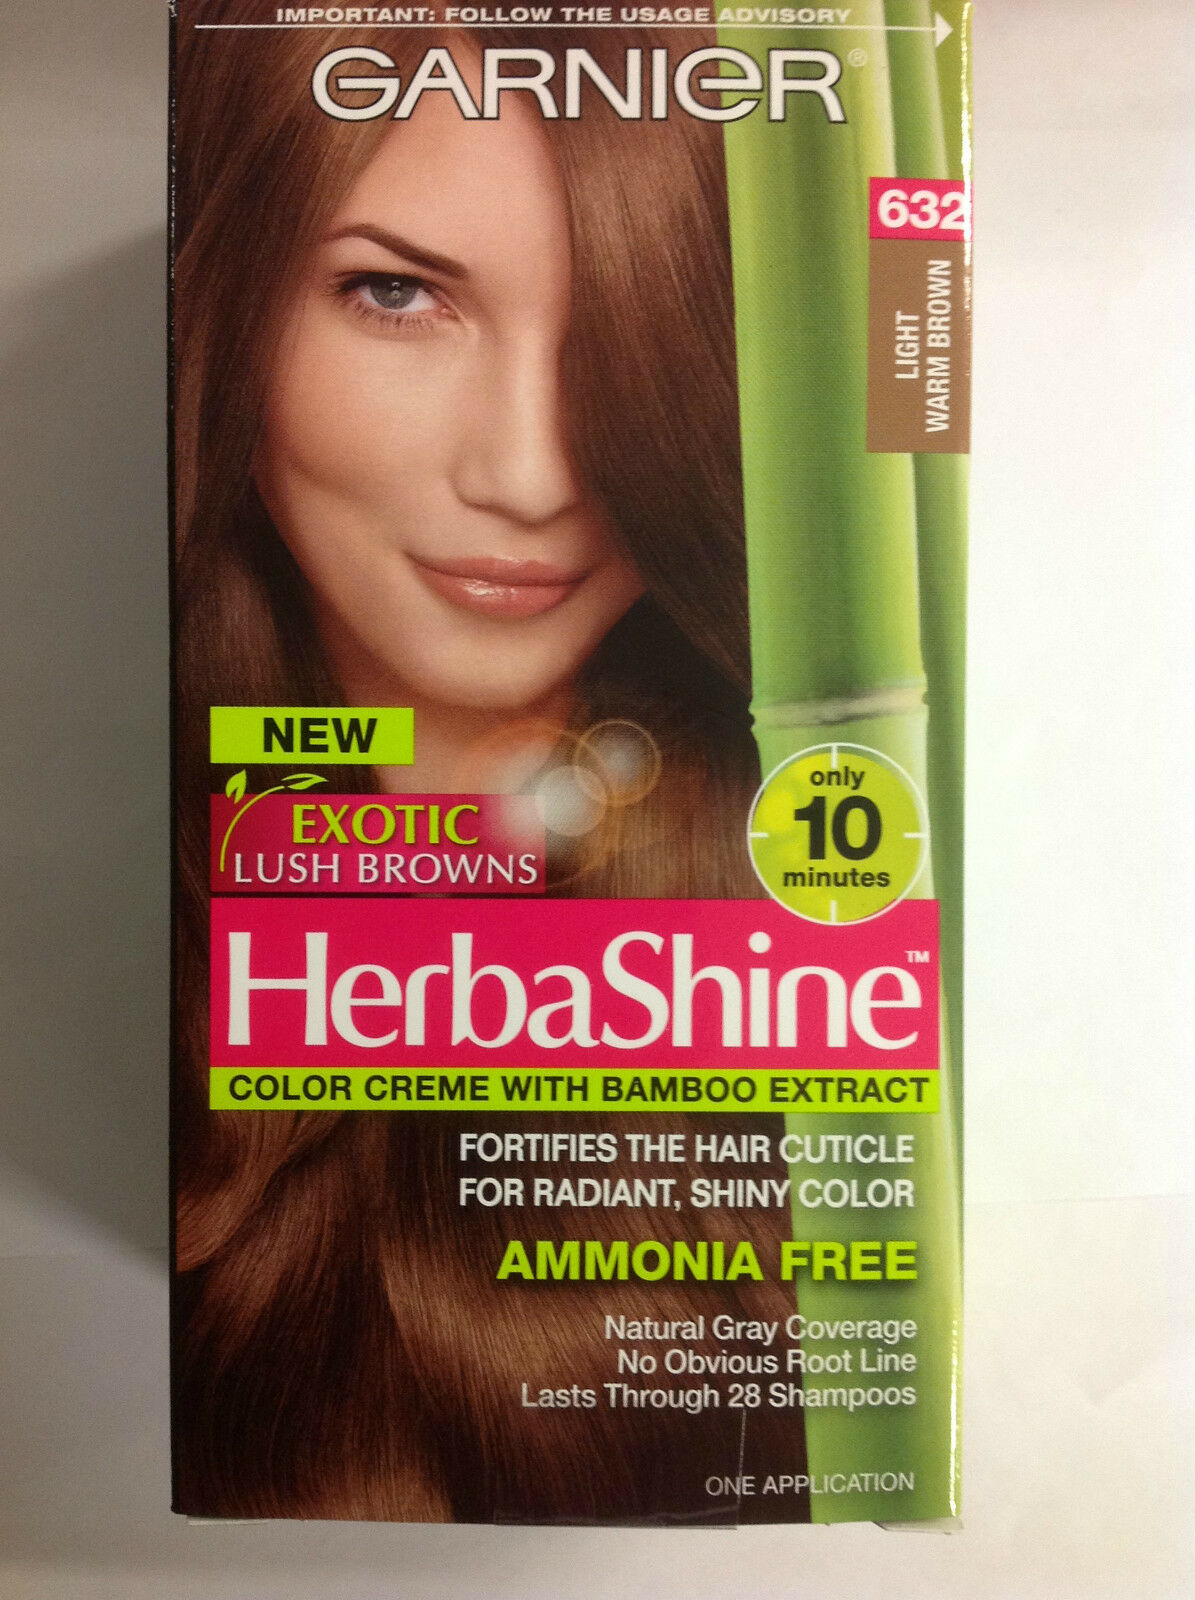 3 X Garnier Herbashine Haircolor Creme 632 Light Warm Brown